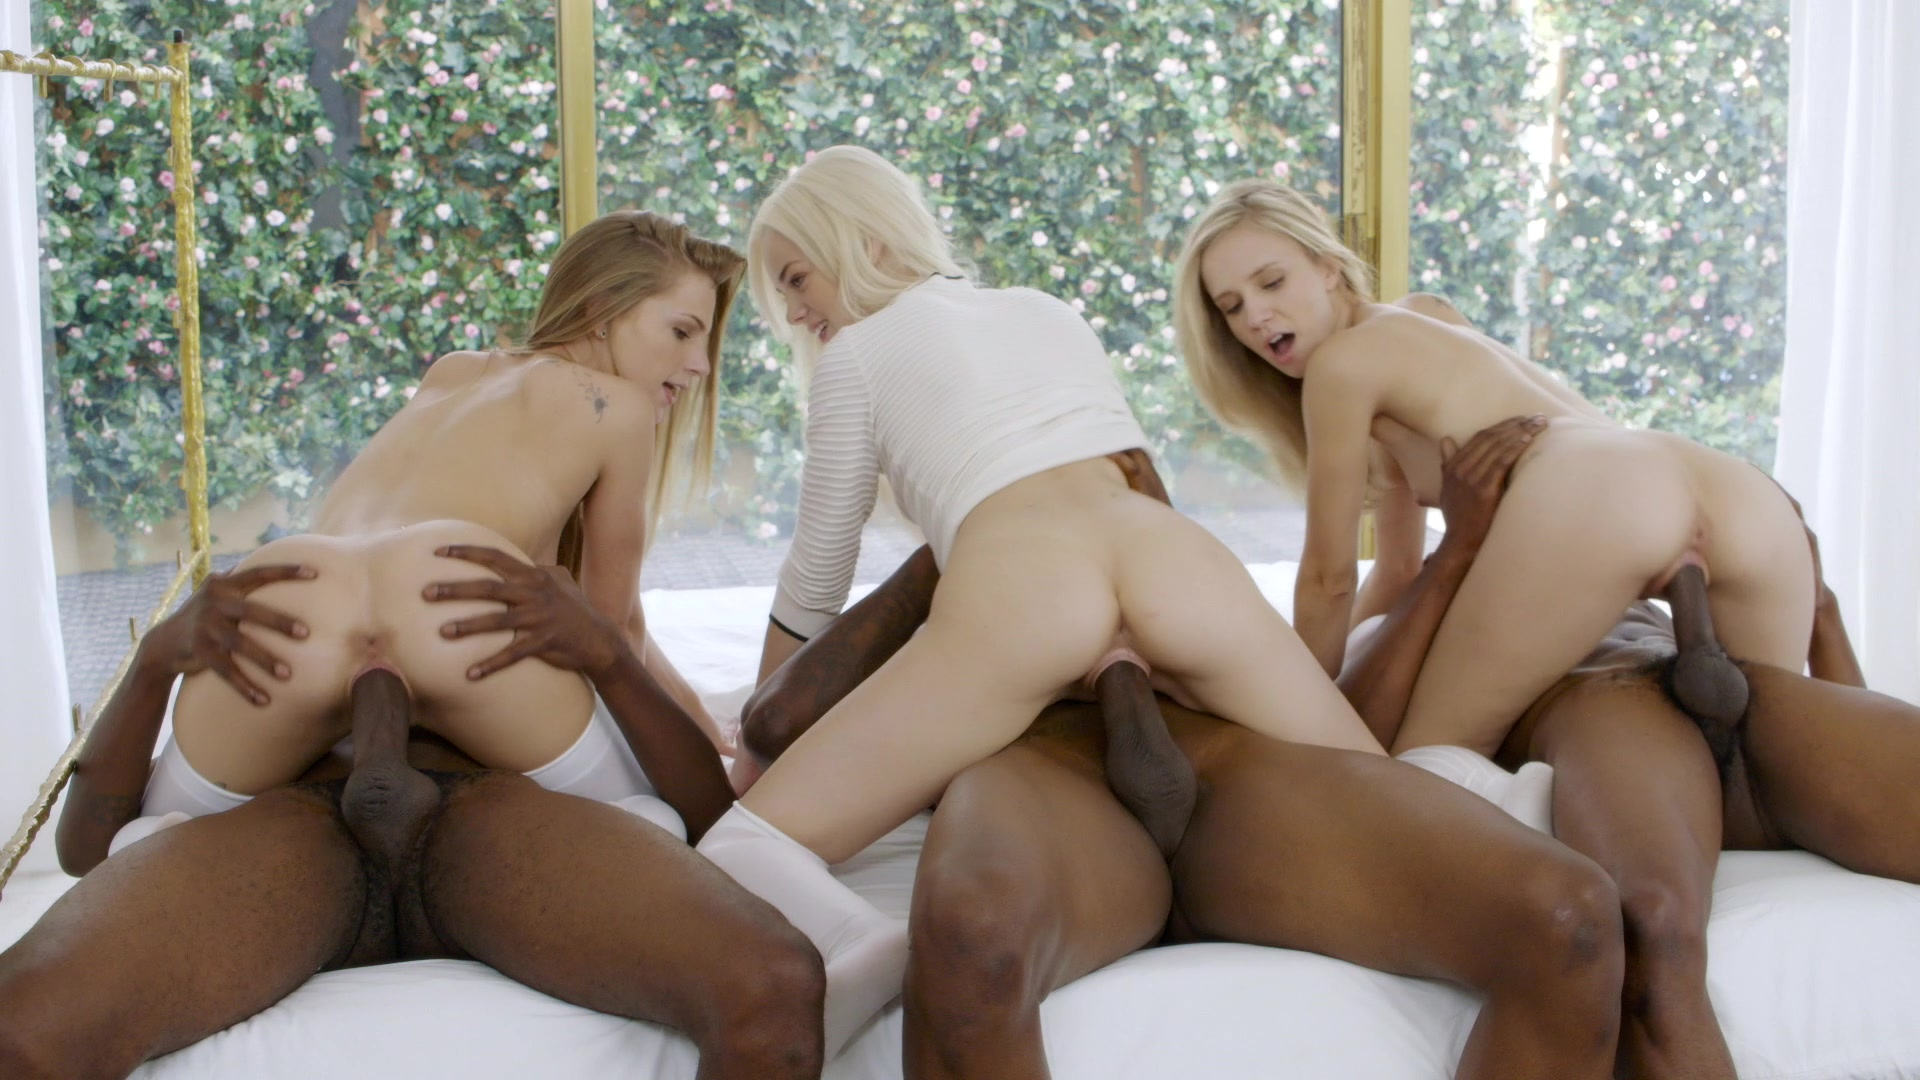 Hot Interracial Sex Videos 40